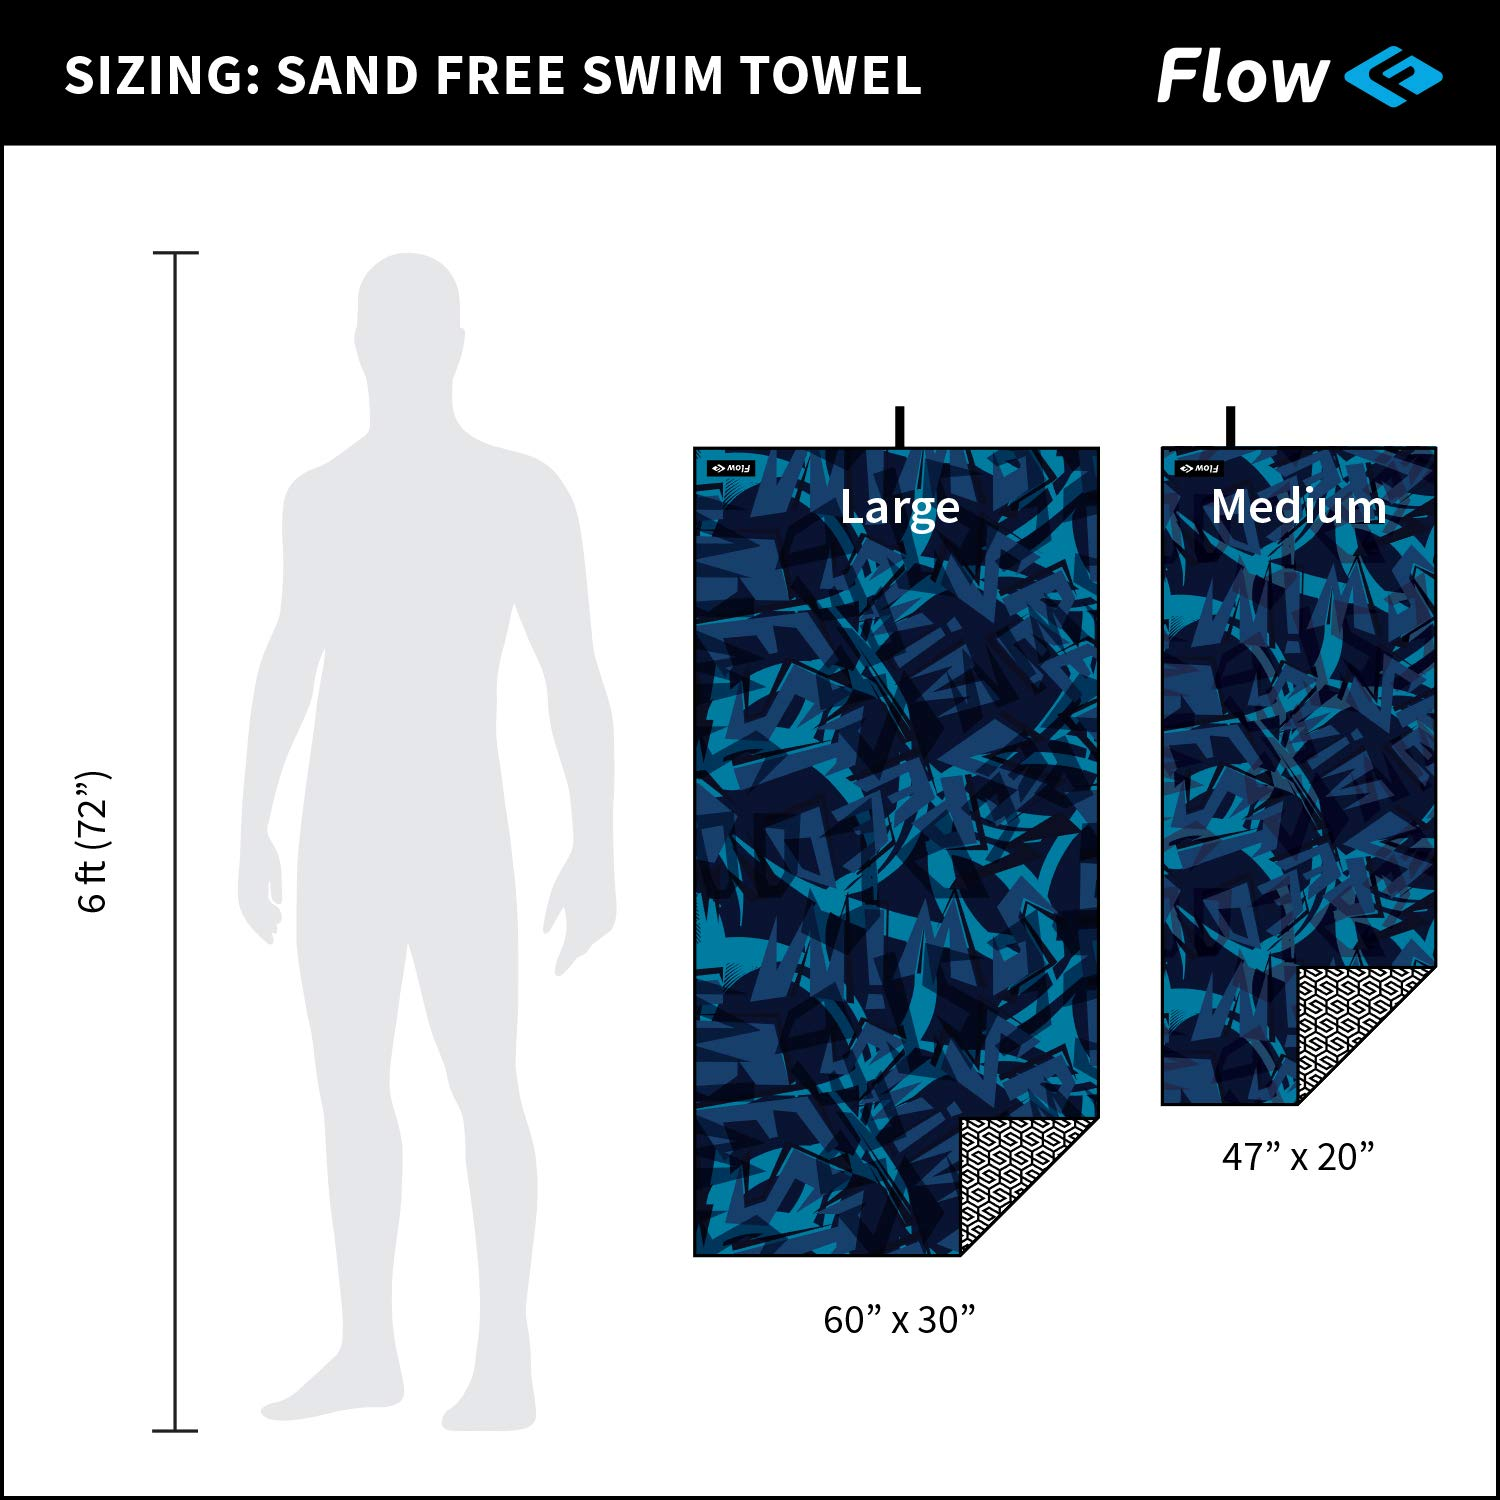 Beach Carrying Bag Included and Travel in Large and Medium Sizes Quick Dry Microfiber Towels for Swim Flow Sand Free Towel